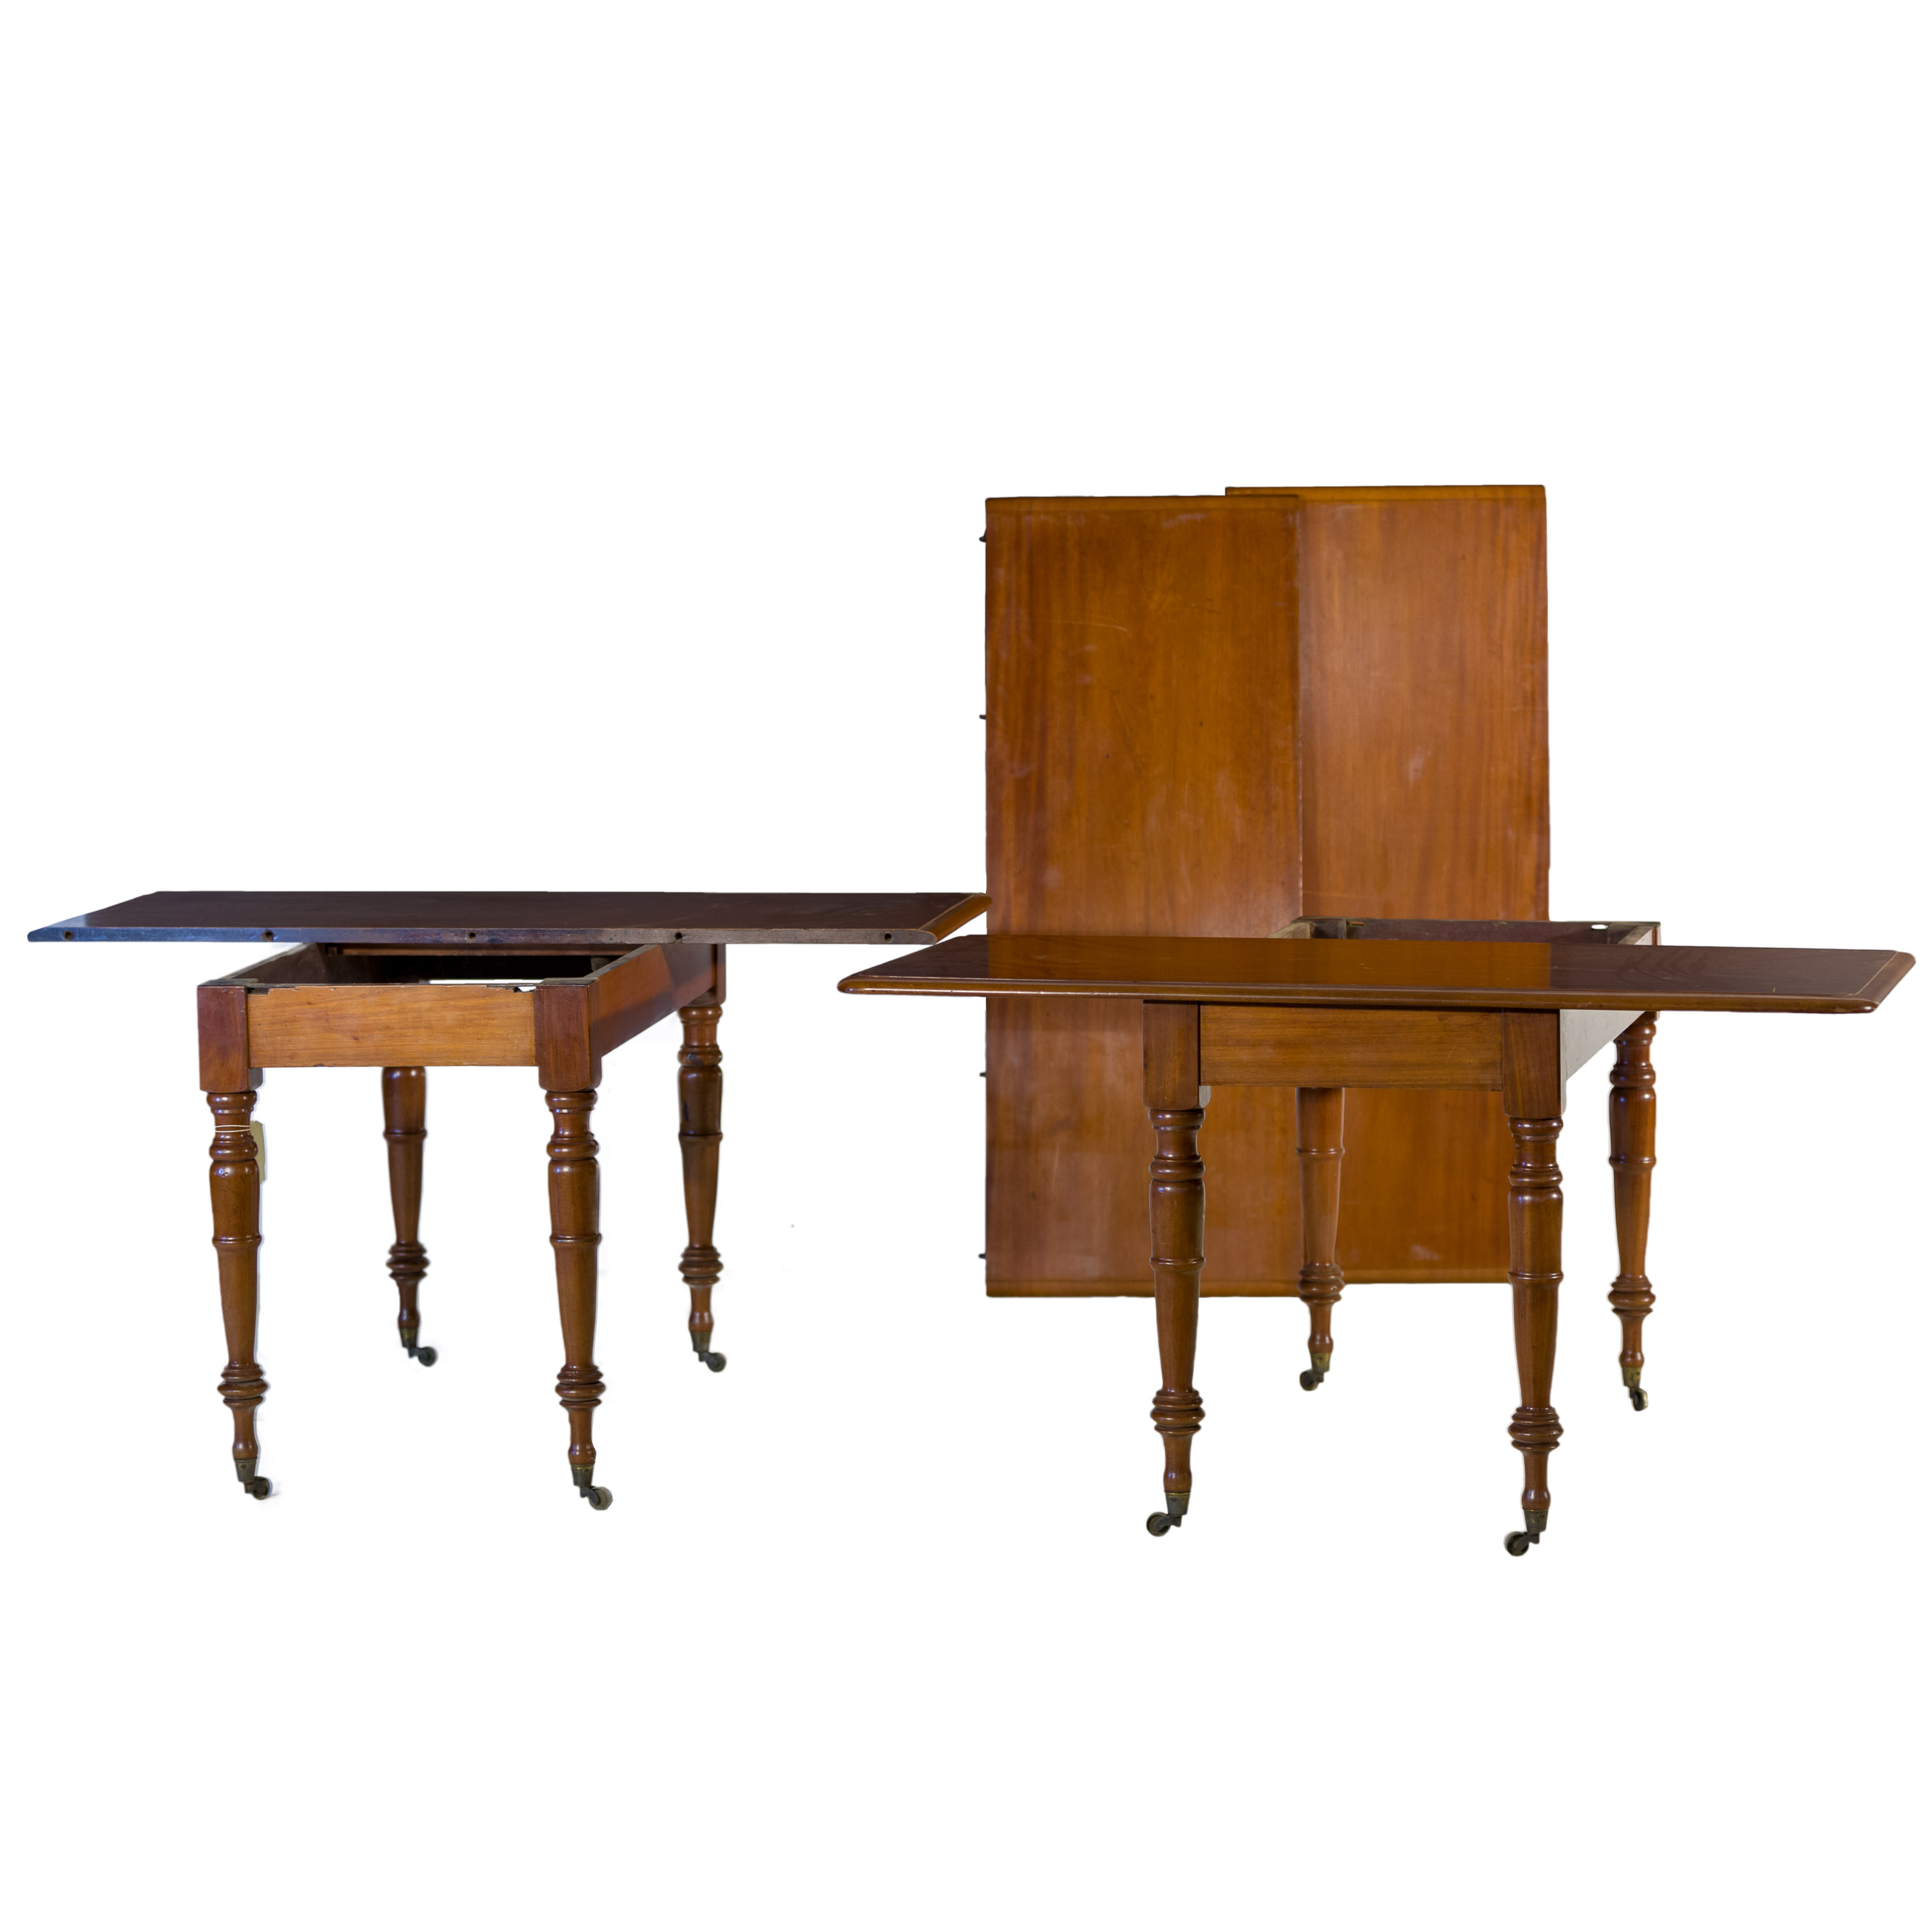 'Unusual Victorian Mahogany Extension Dining Table Converts to Side Tables Circa 1880 '